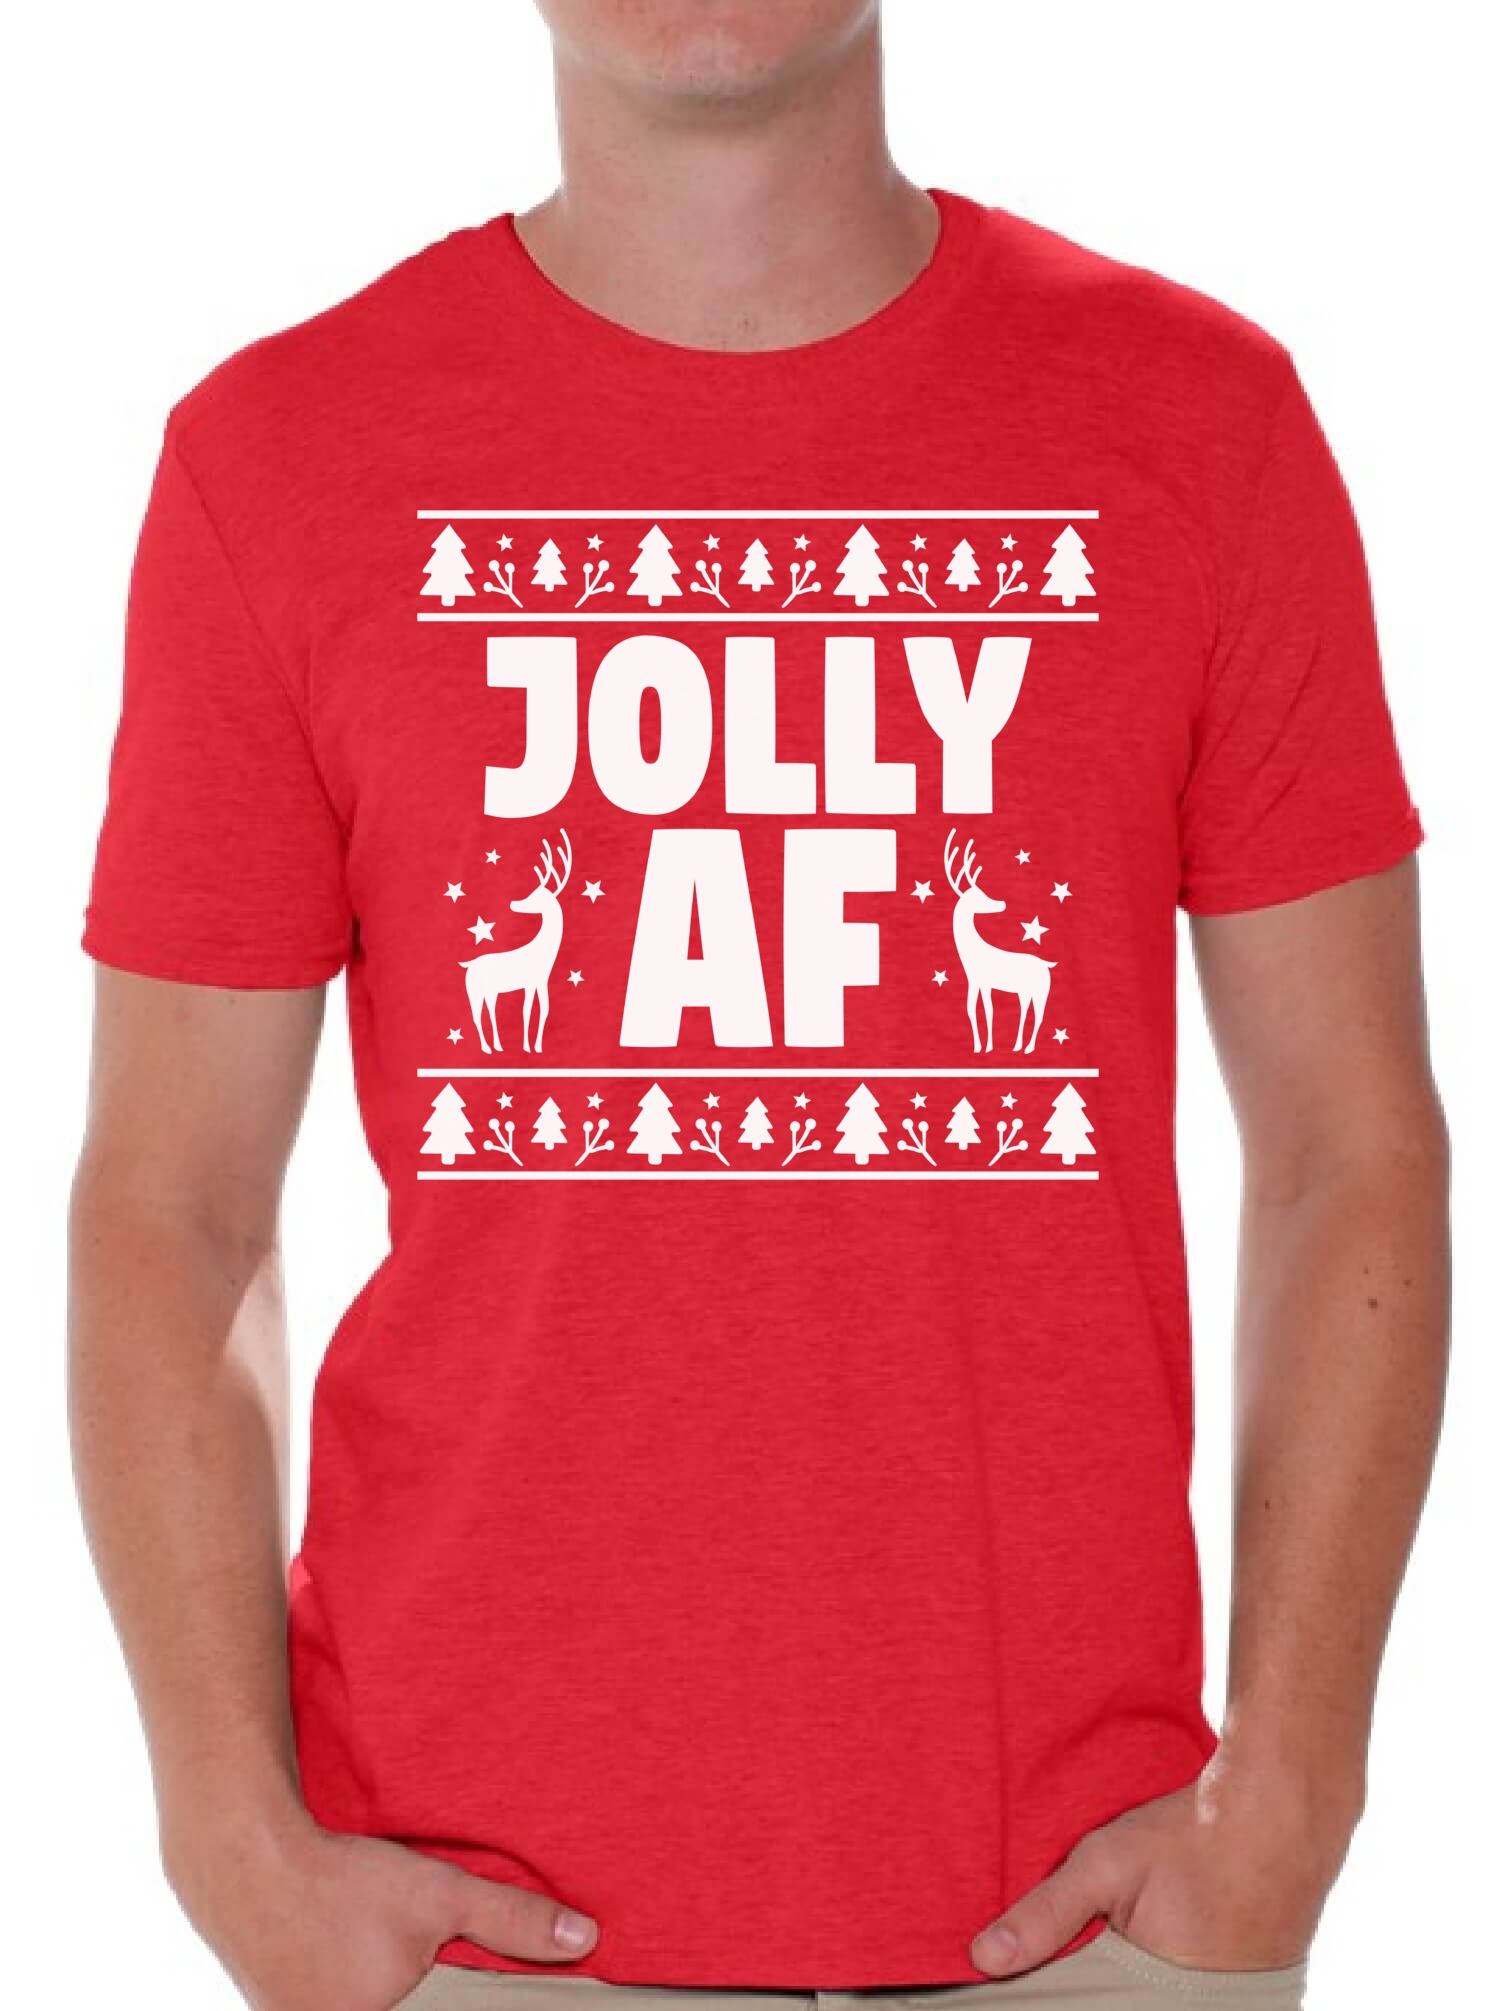 Jolly Christmas T-shirt 0rjZ8S6aL